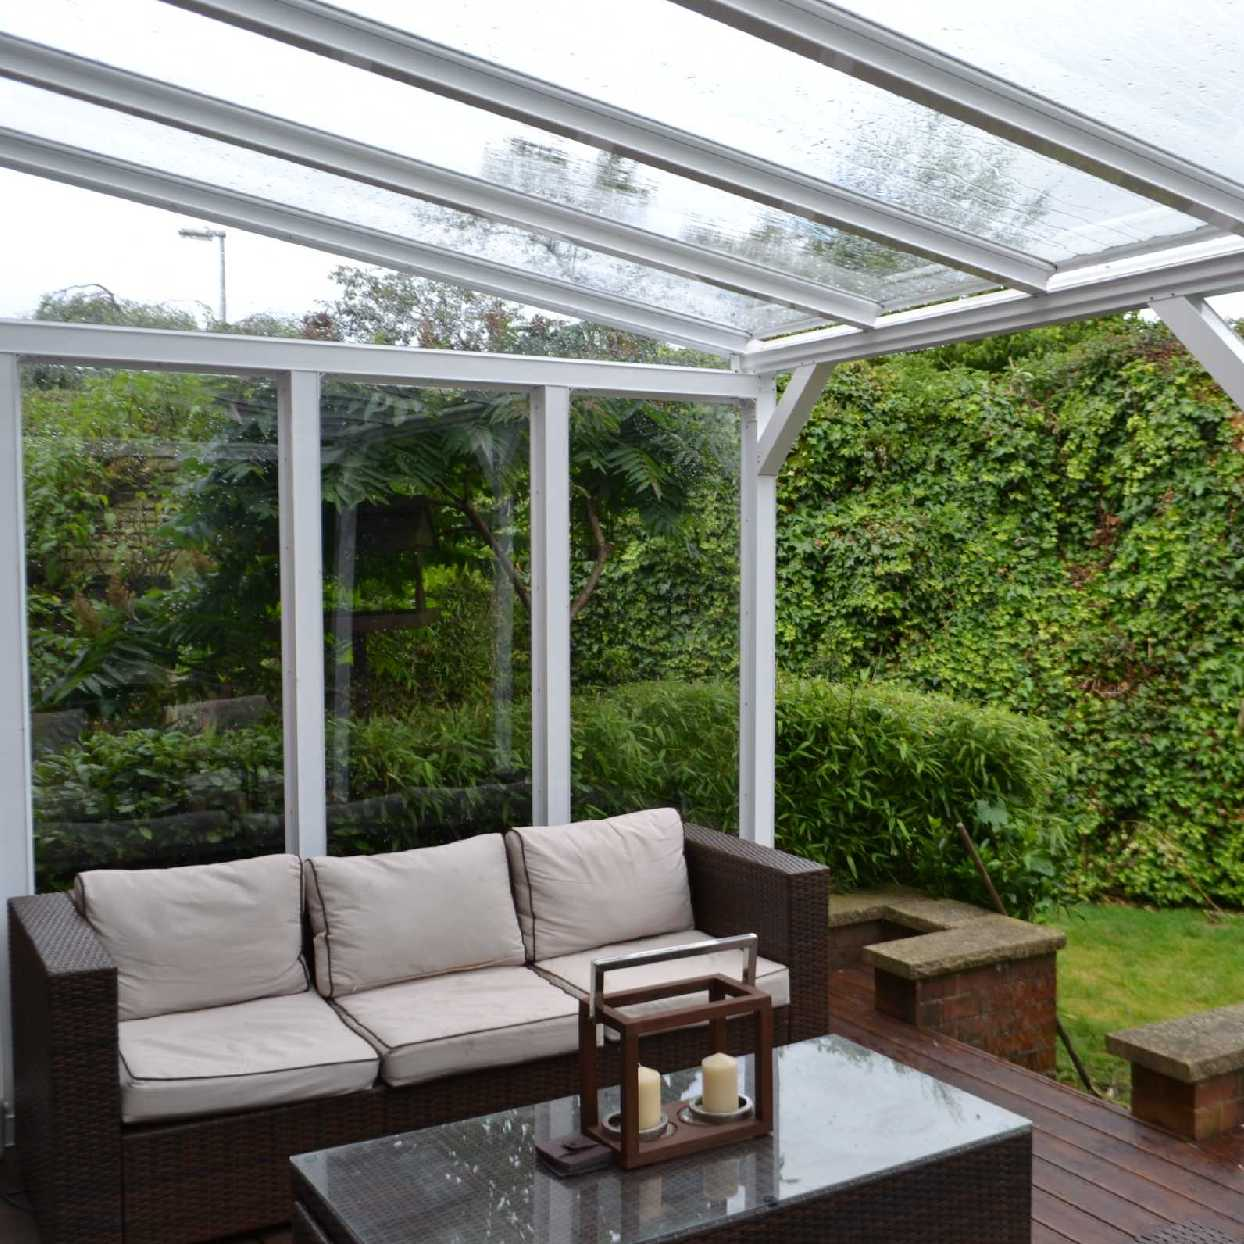 Great selection of Omega Smart Lean-To Canopy with 16mm Polycarbonate Glazing - 11.6m (W) x 1.5m (P), (5) Supporting Posts